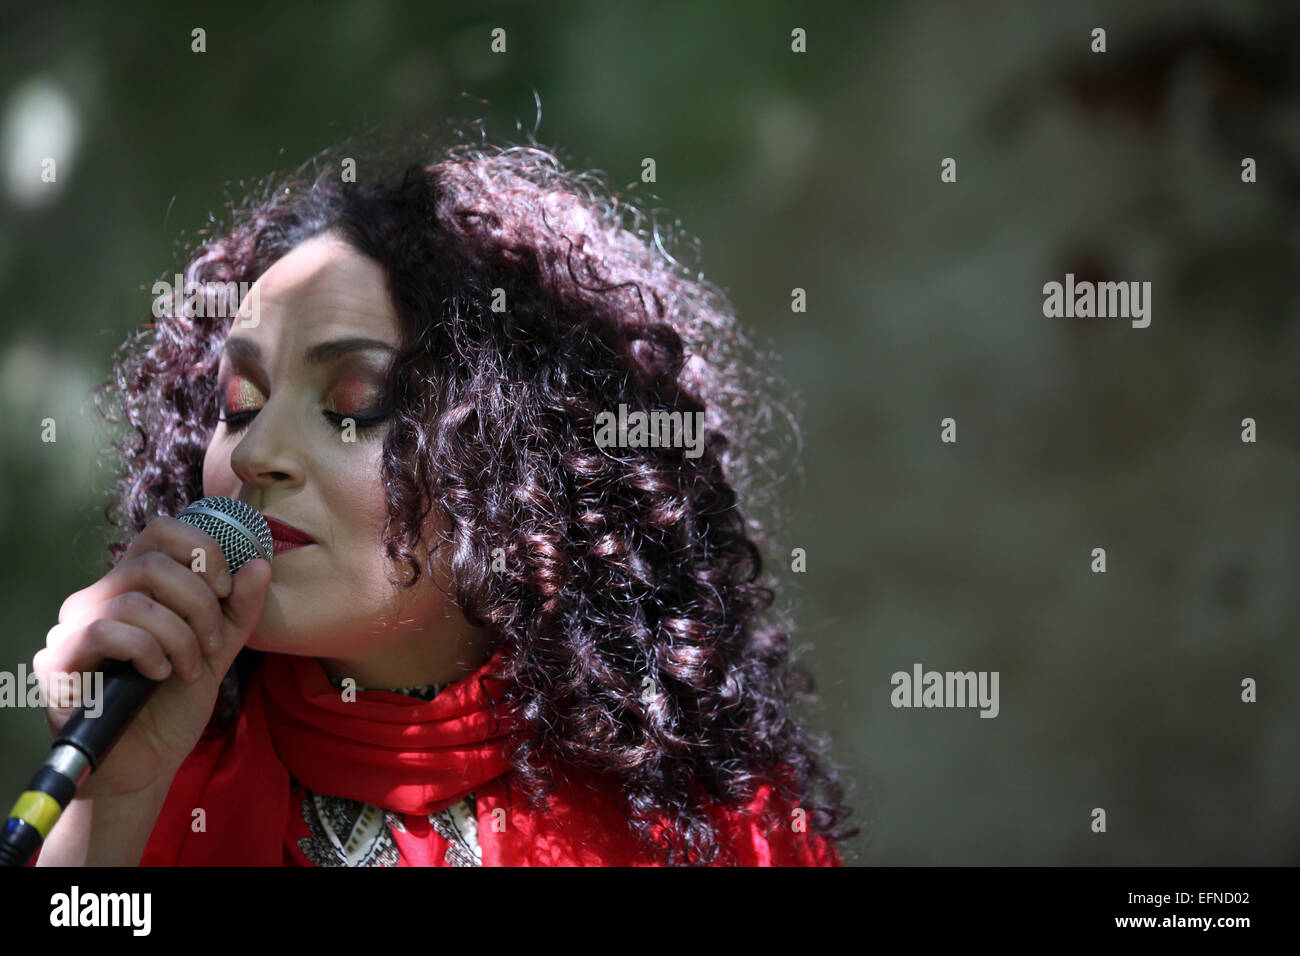 Close-up of female singer - Stock Image